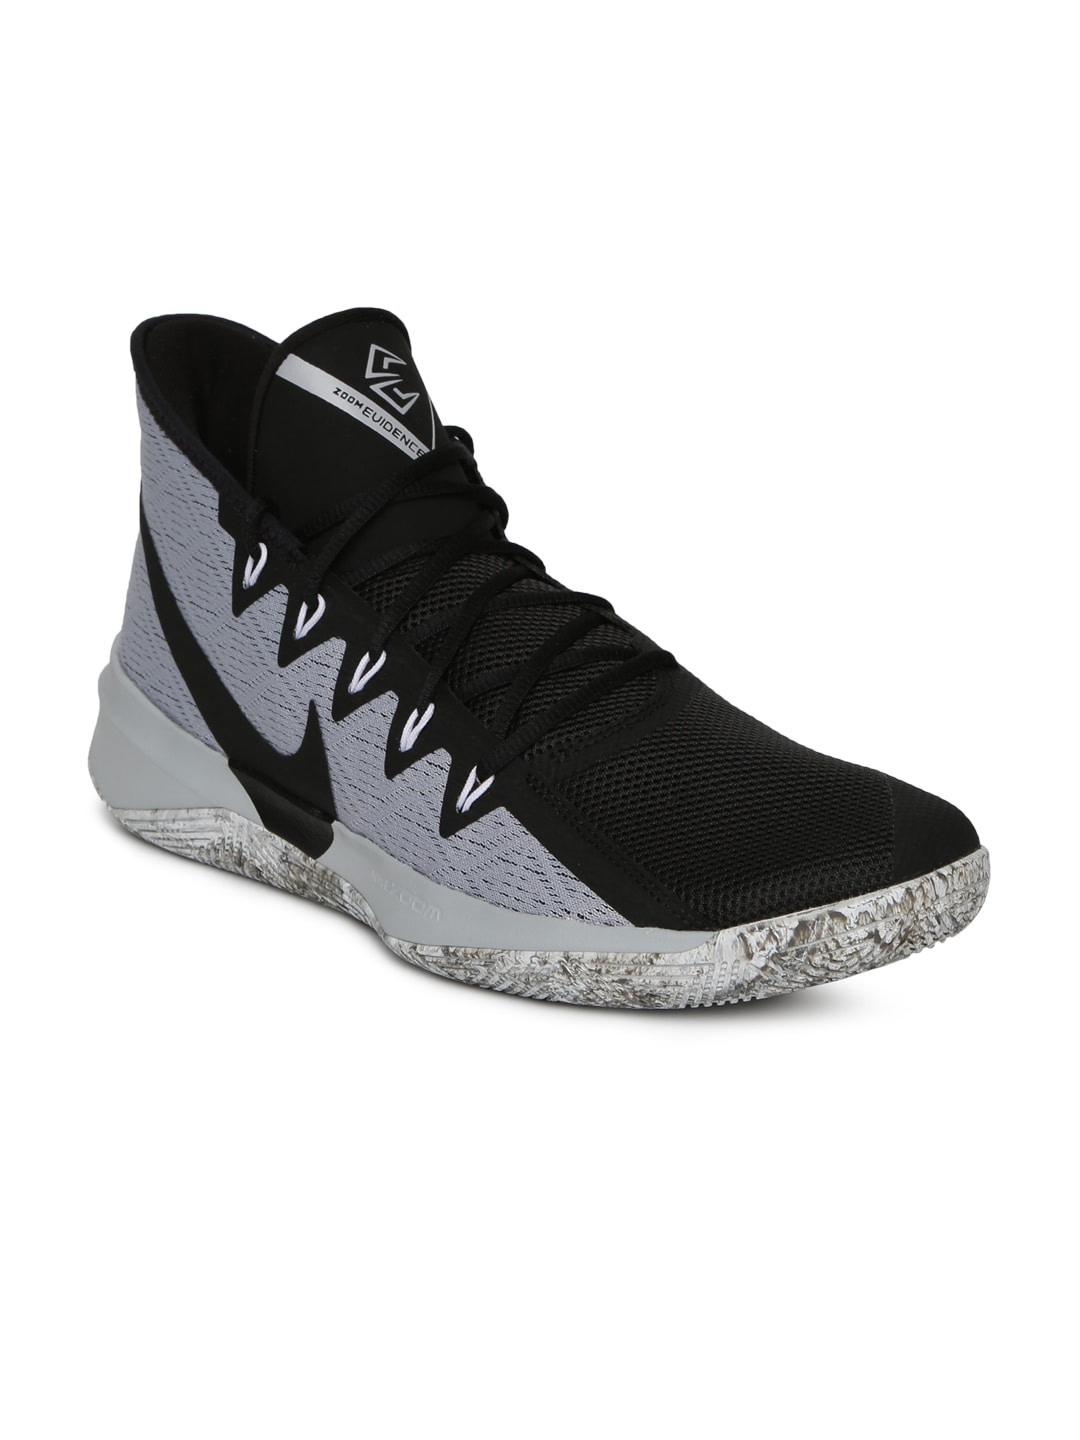 san francisco ae21c 8bb18 Nike Basketball Shoes   Buy Nike Basketball Shoes Online in India at Best  Price